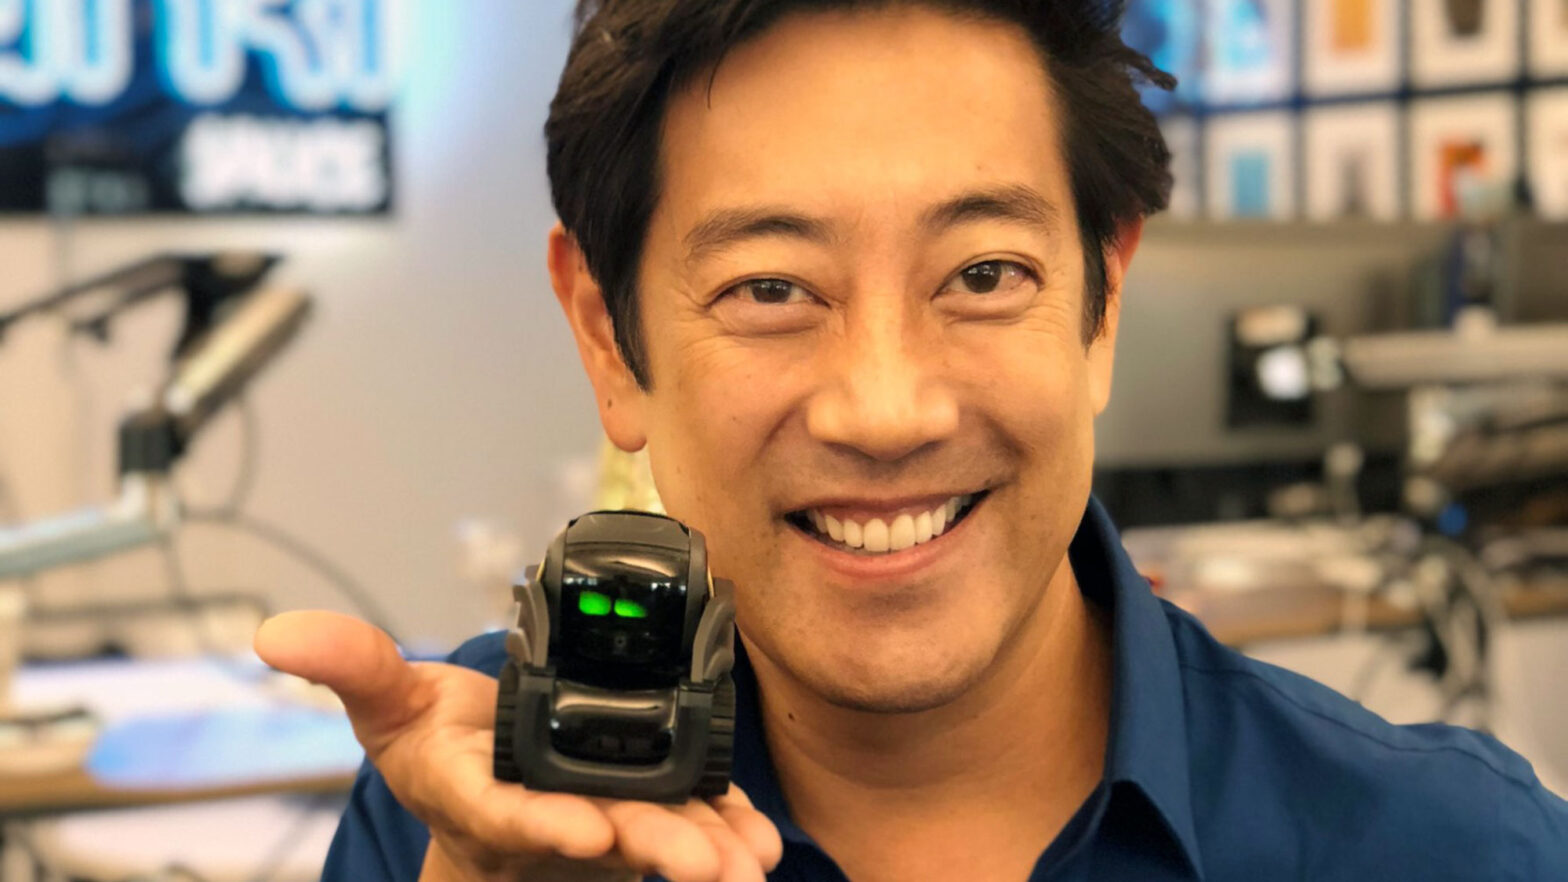 Grant Imahara Died At Age of 49